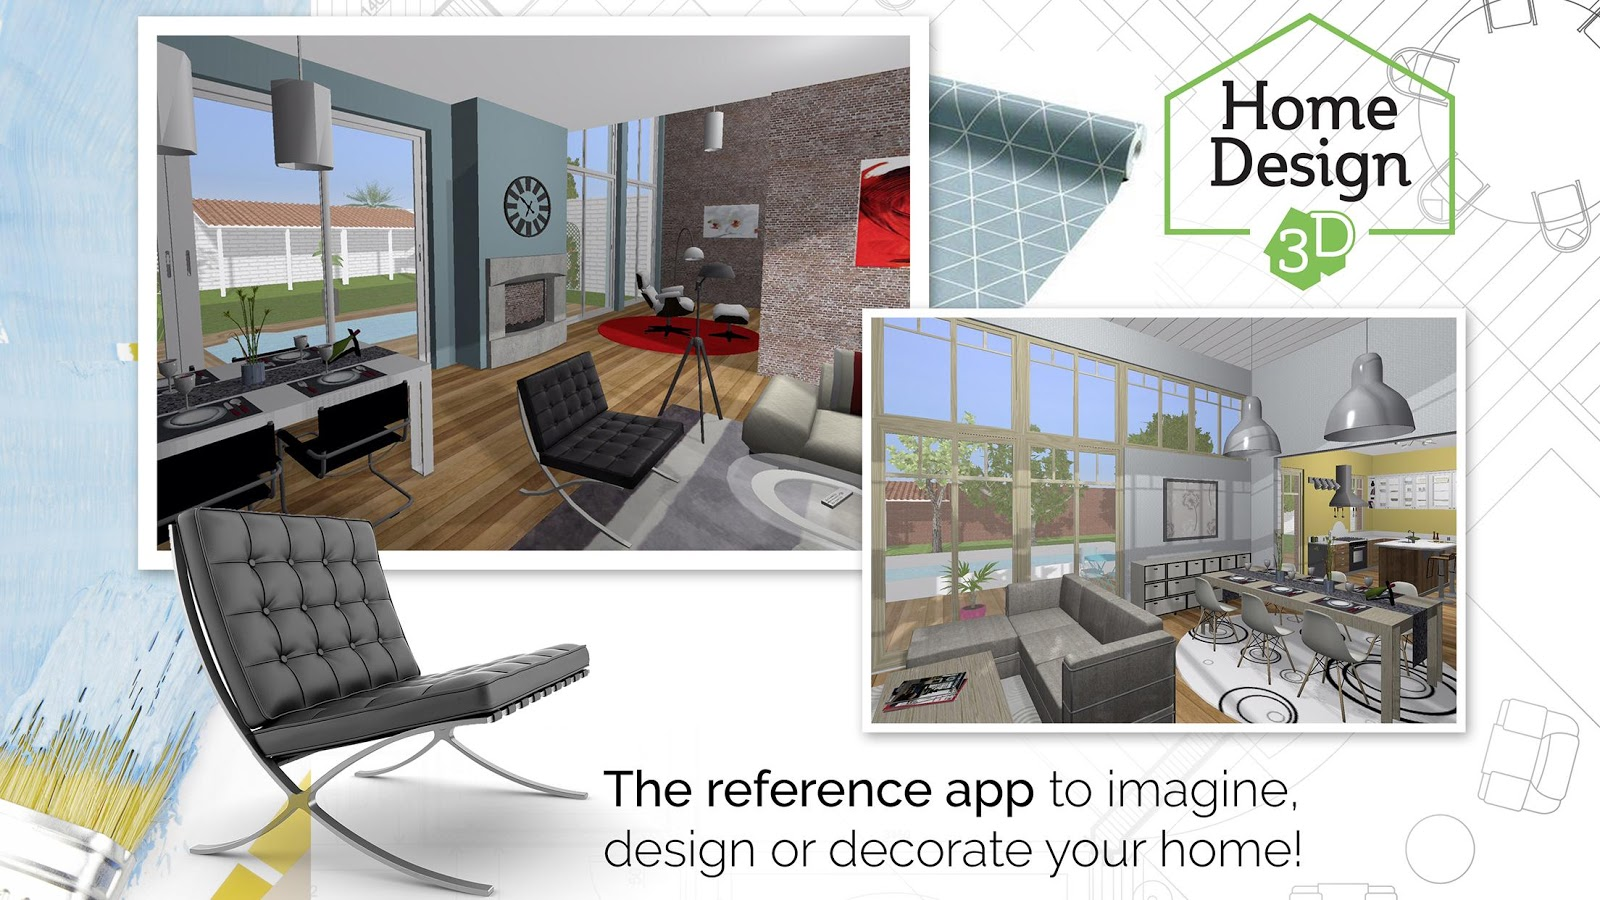 Home design 3d freemium android apps on google play Build your dream house app